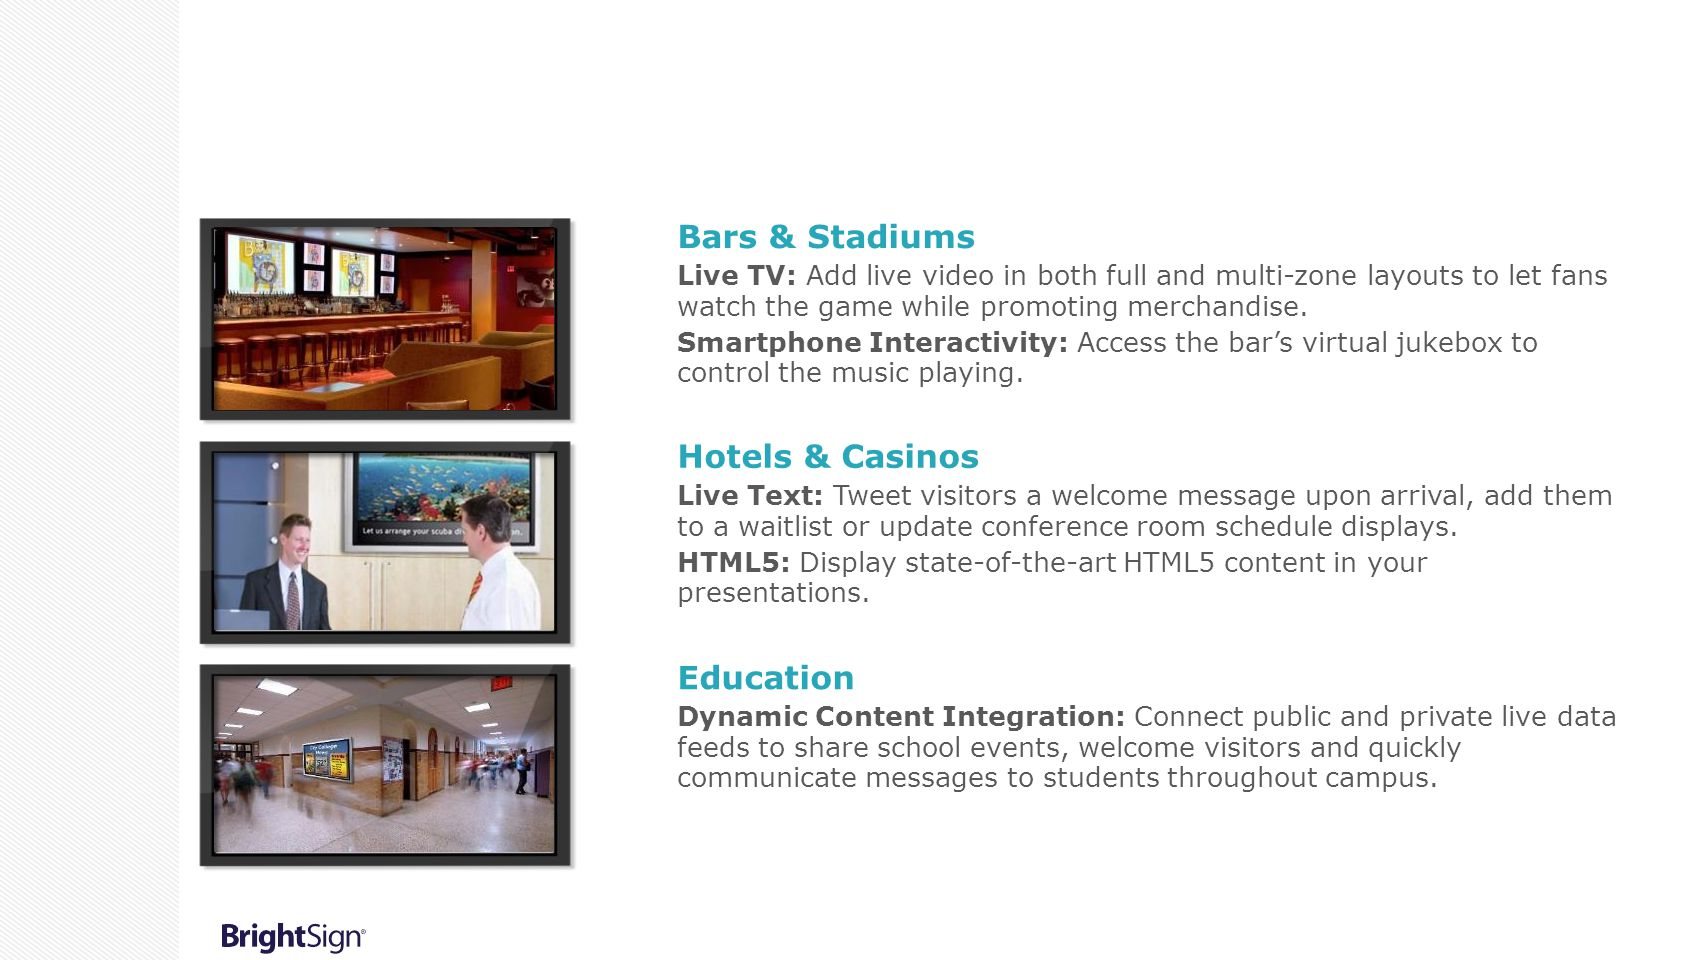 Exceptional Digital Signage Solutions Ppt Video Online Download Fan Control Switches At Aubuchon Hardware 5 Bars